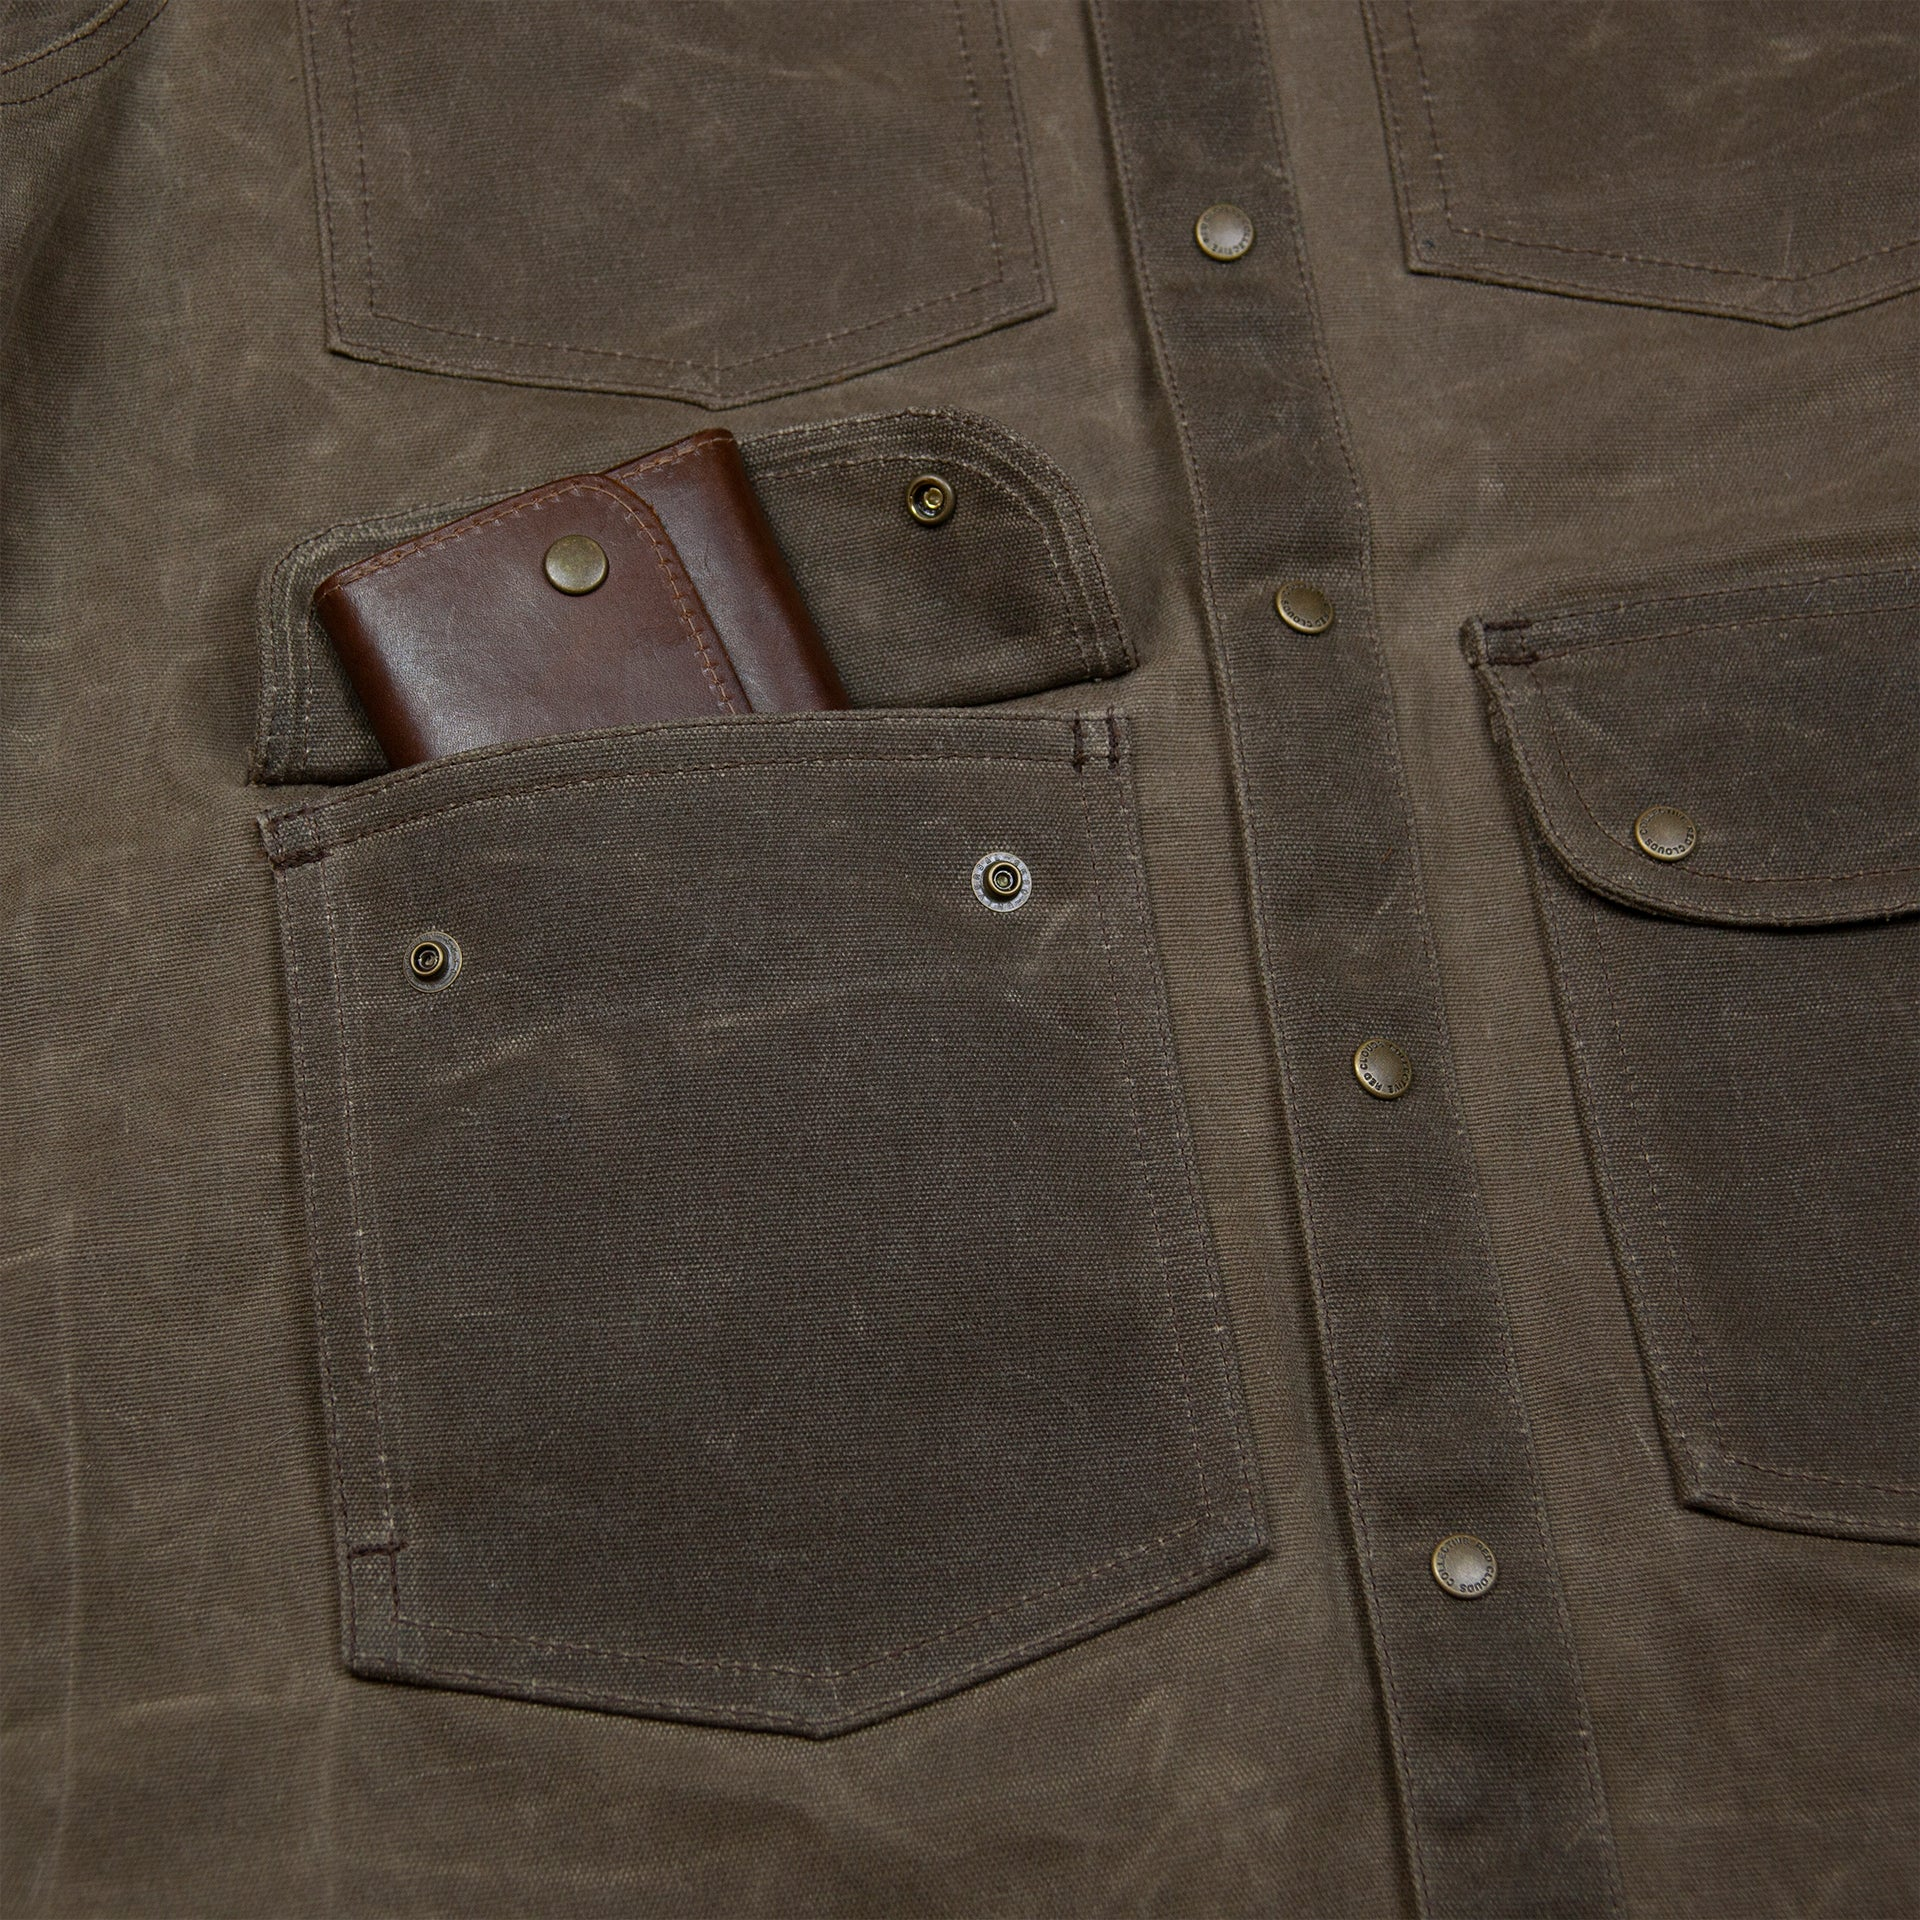 20 oz Waxed Canvas Jacket - Havana